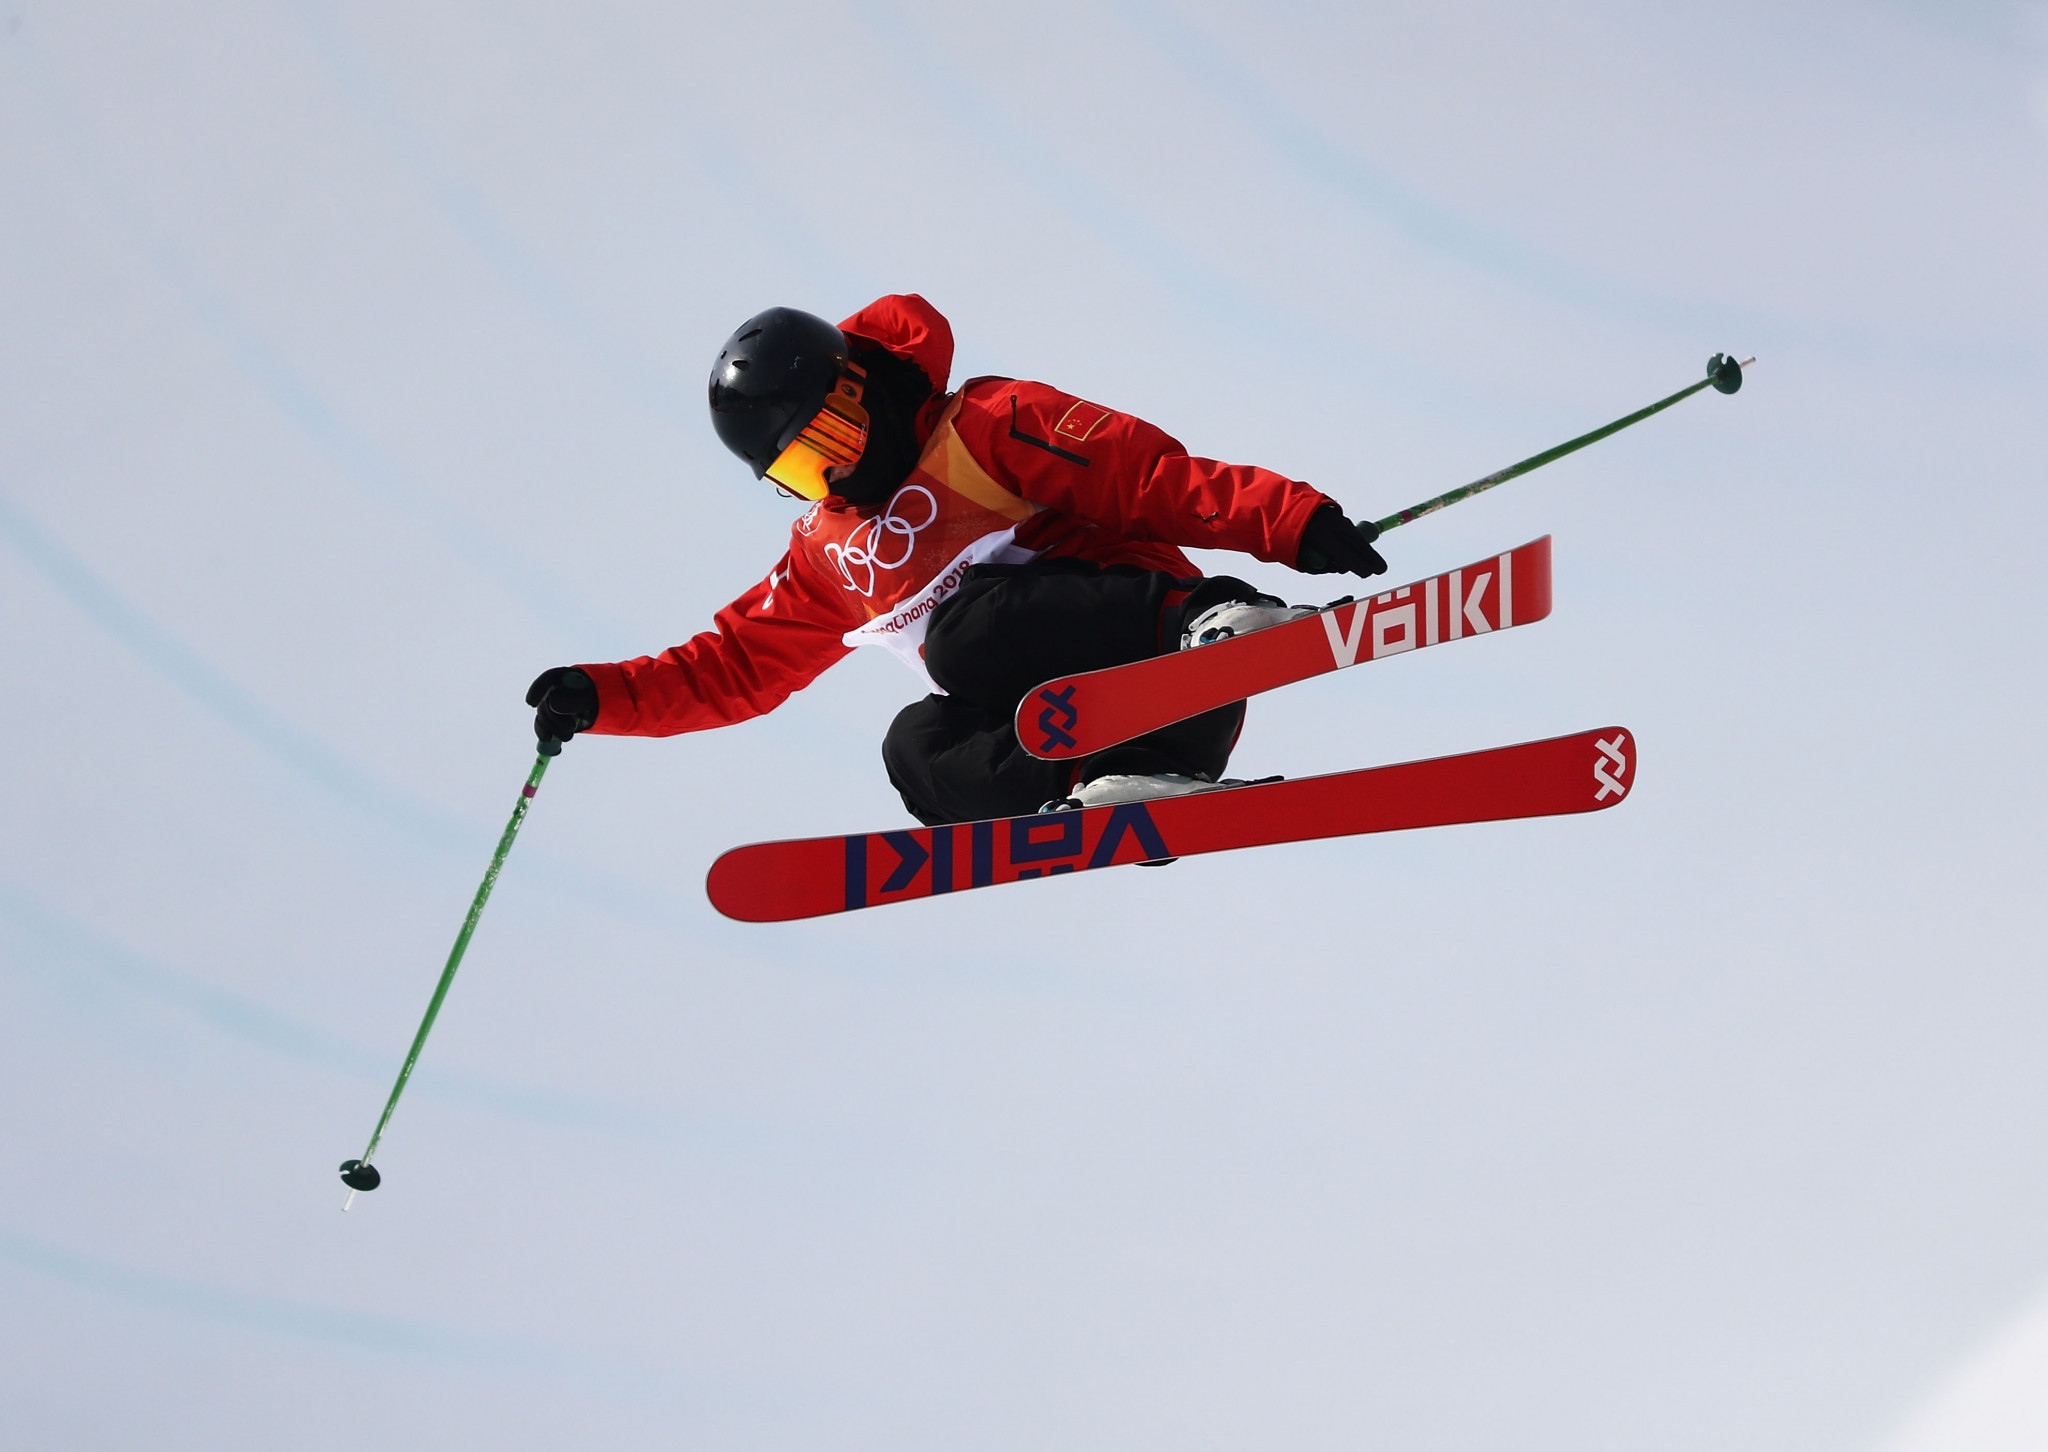 Zhang and d'Artois wrap up 2018 with wins at FIS Freestyle Skiing Halfpipe World Cup